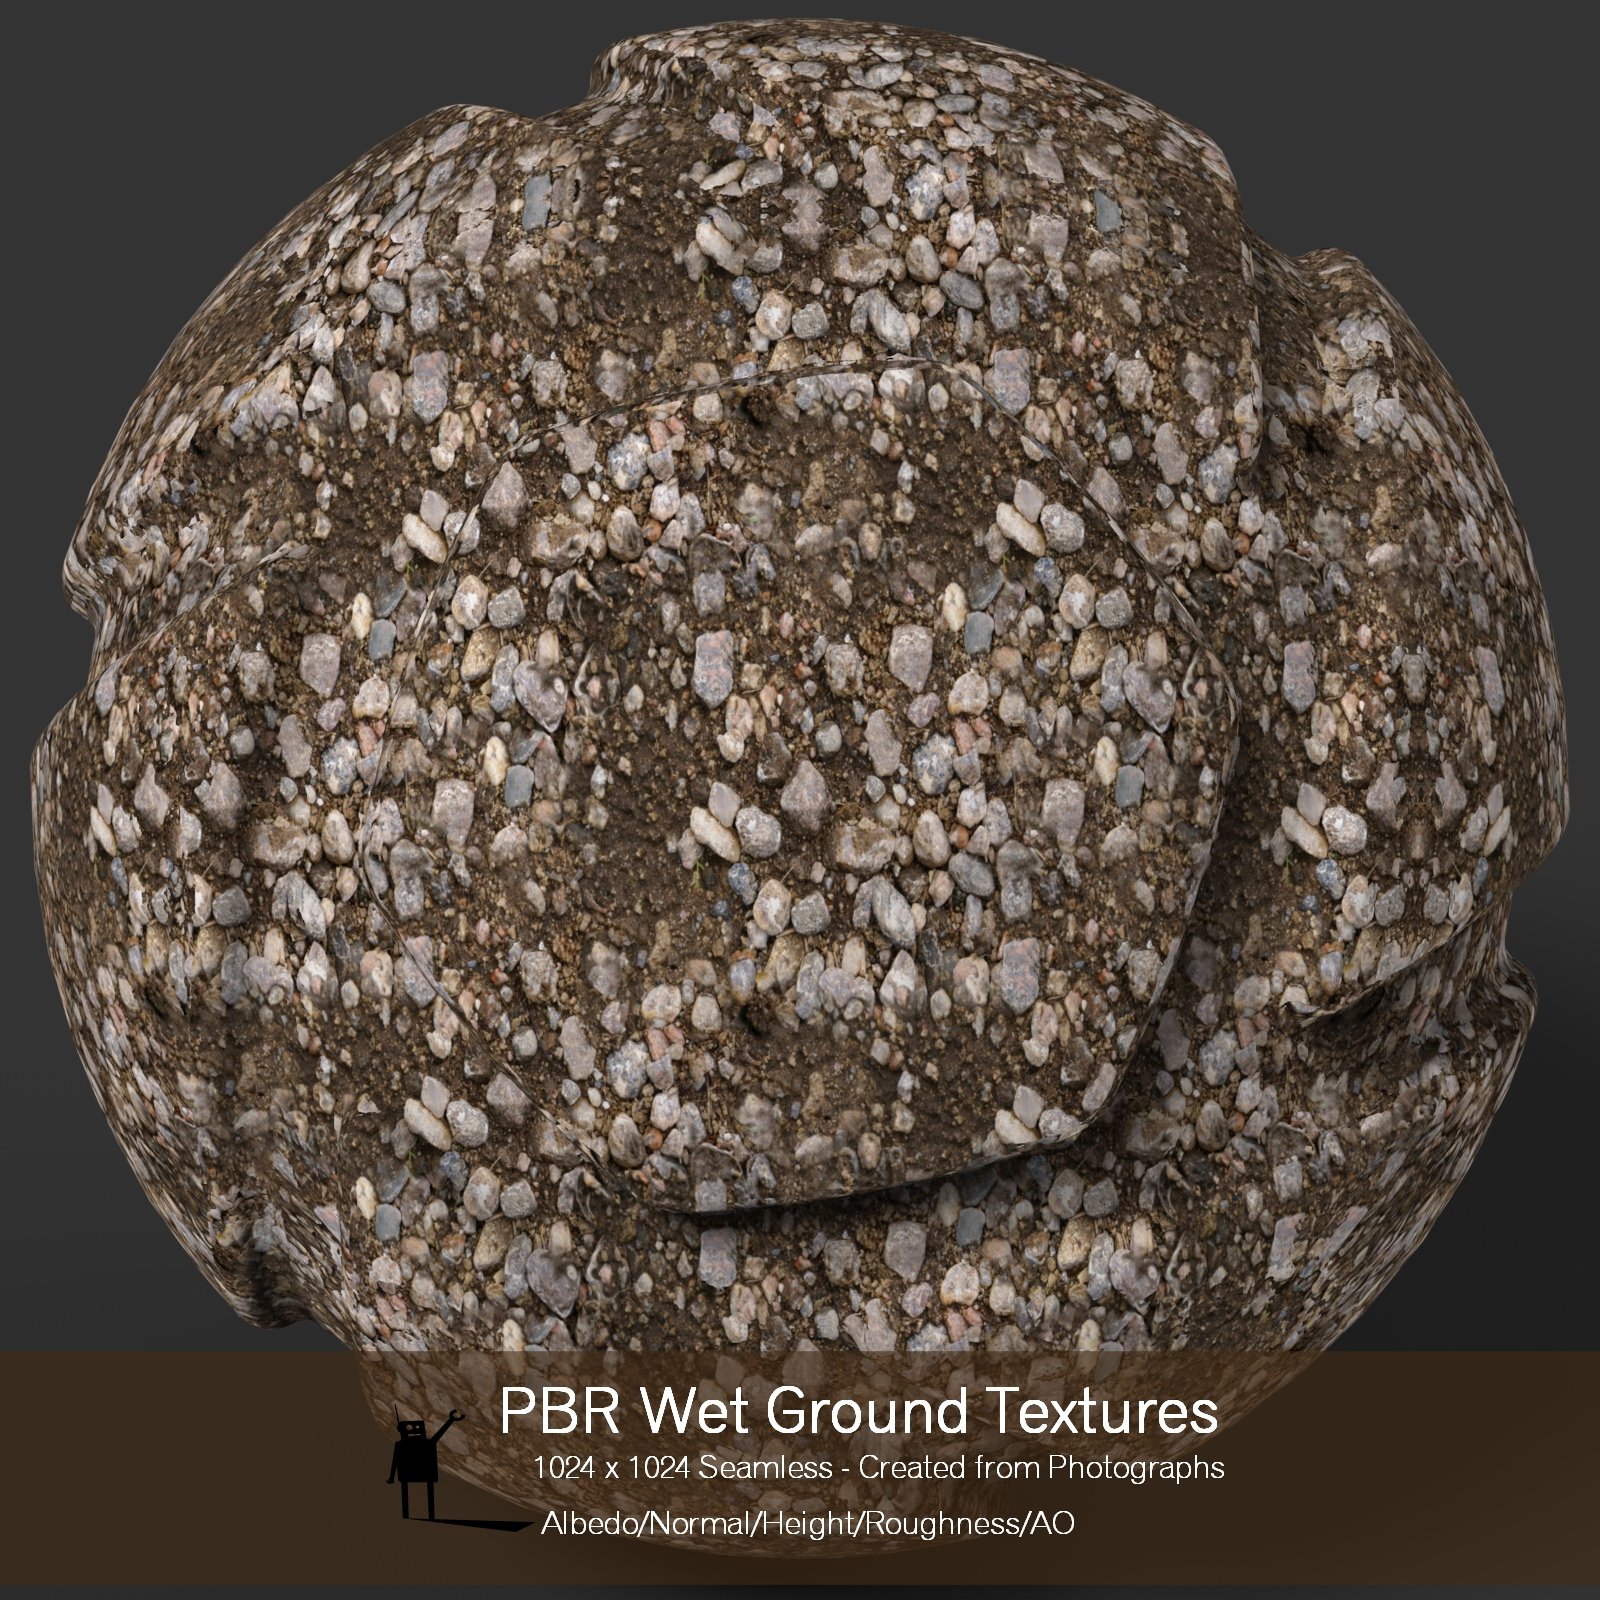 10 Seamless PBR Wet Ground Textures with Texture maps 2D